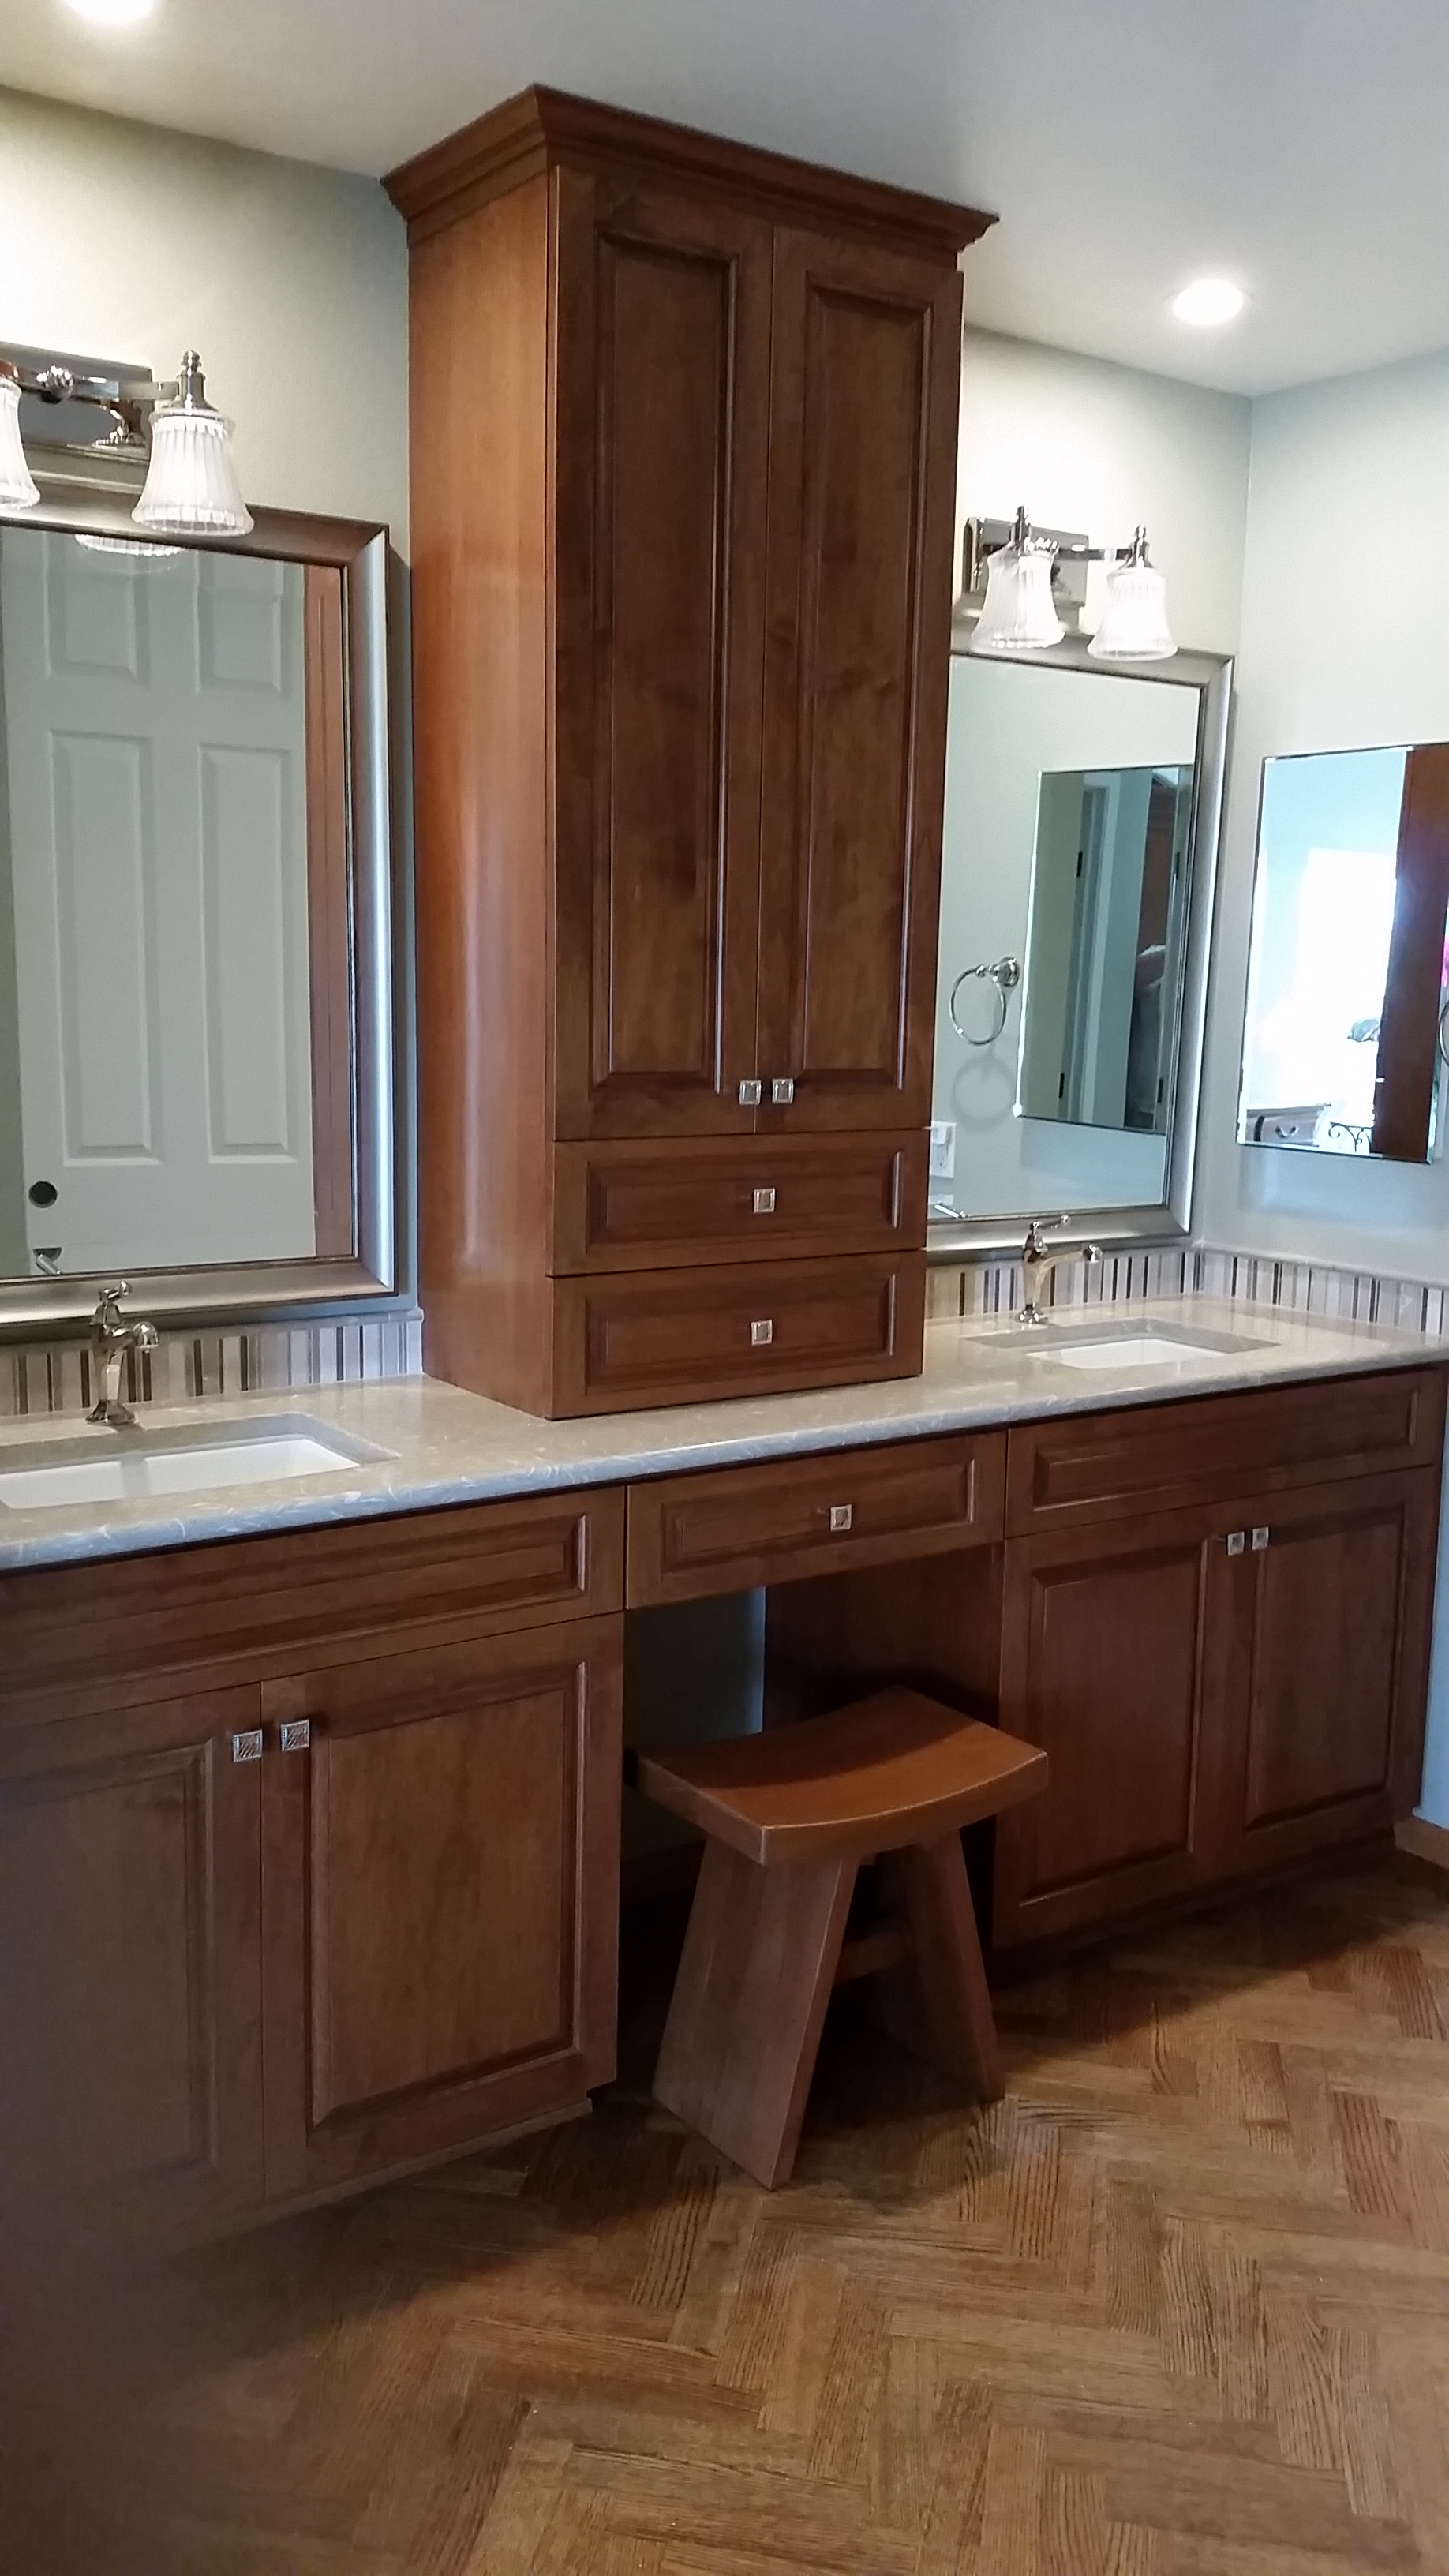 Camarillo Custom Cabinets Andrews Fine Cabinets And Millwork